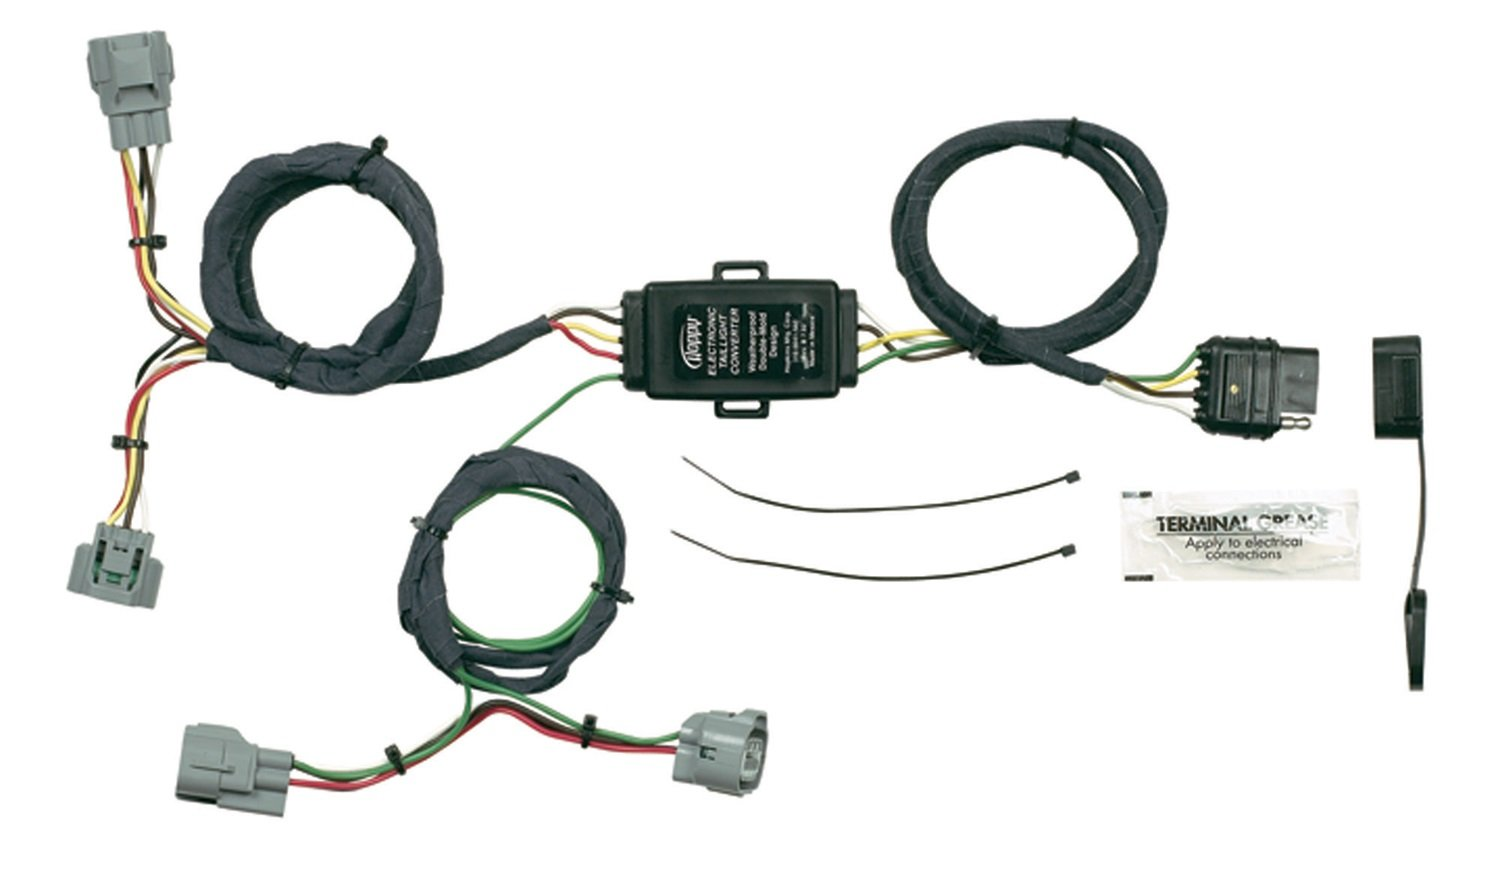 61J3Pn4wzzL._SL1500_ amazon com hopkins 43355 plug in simple vehicle wiring kit hopkins 43355 wiring harness at gsmx.co